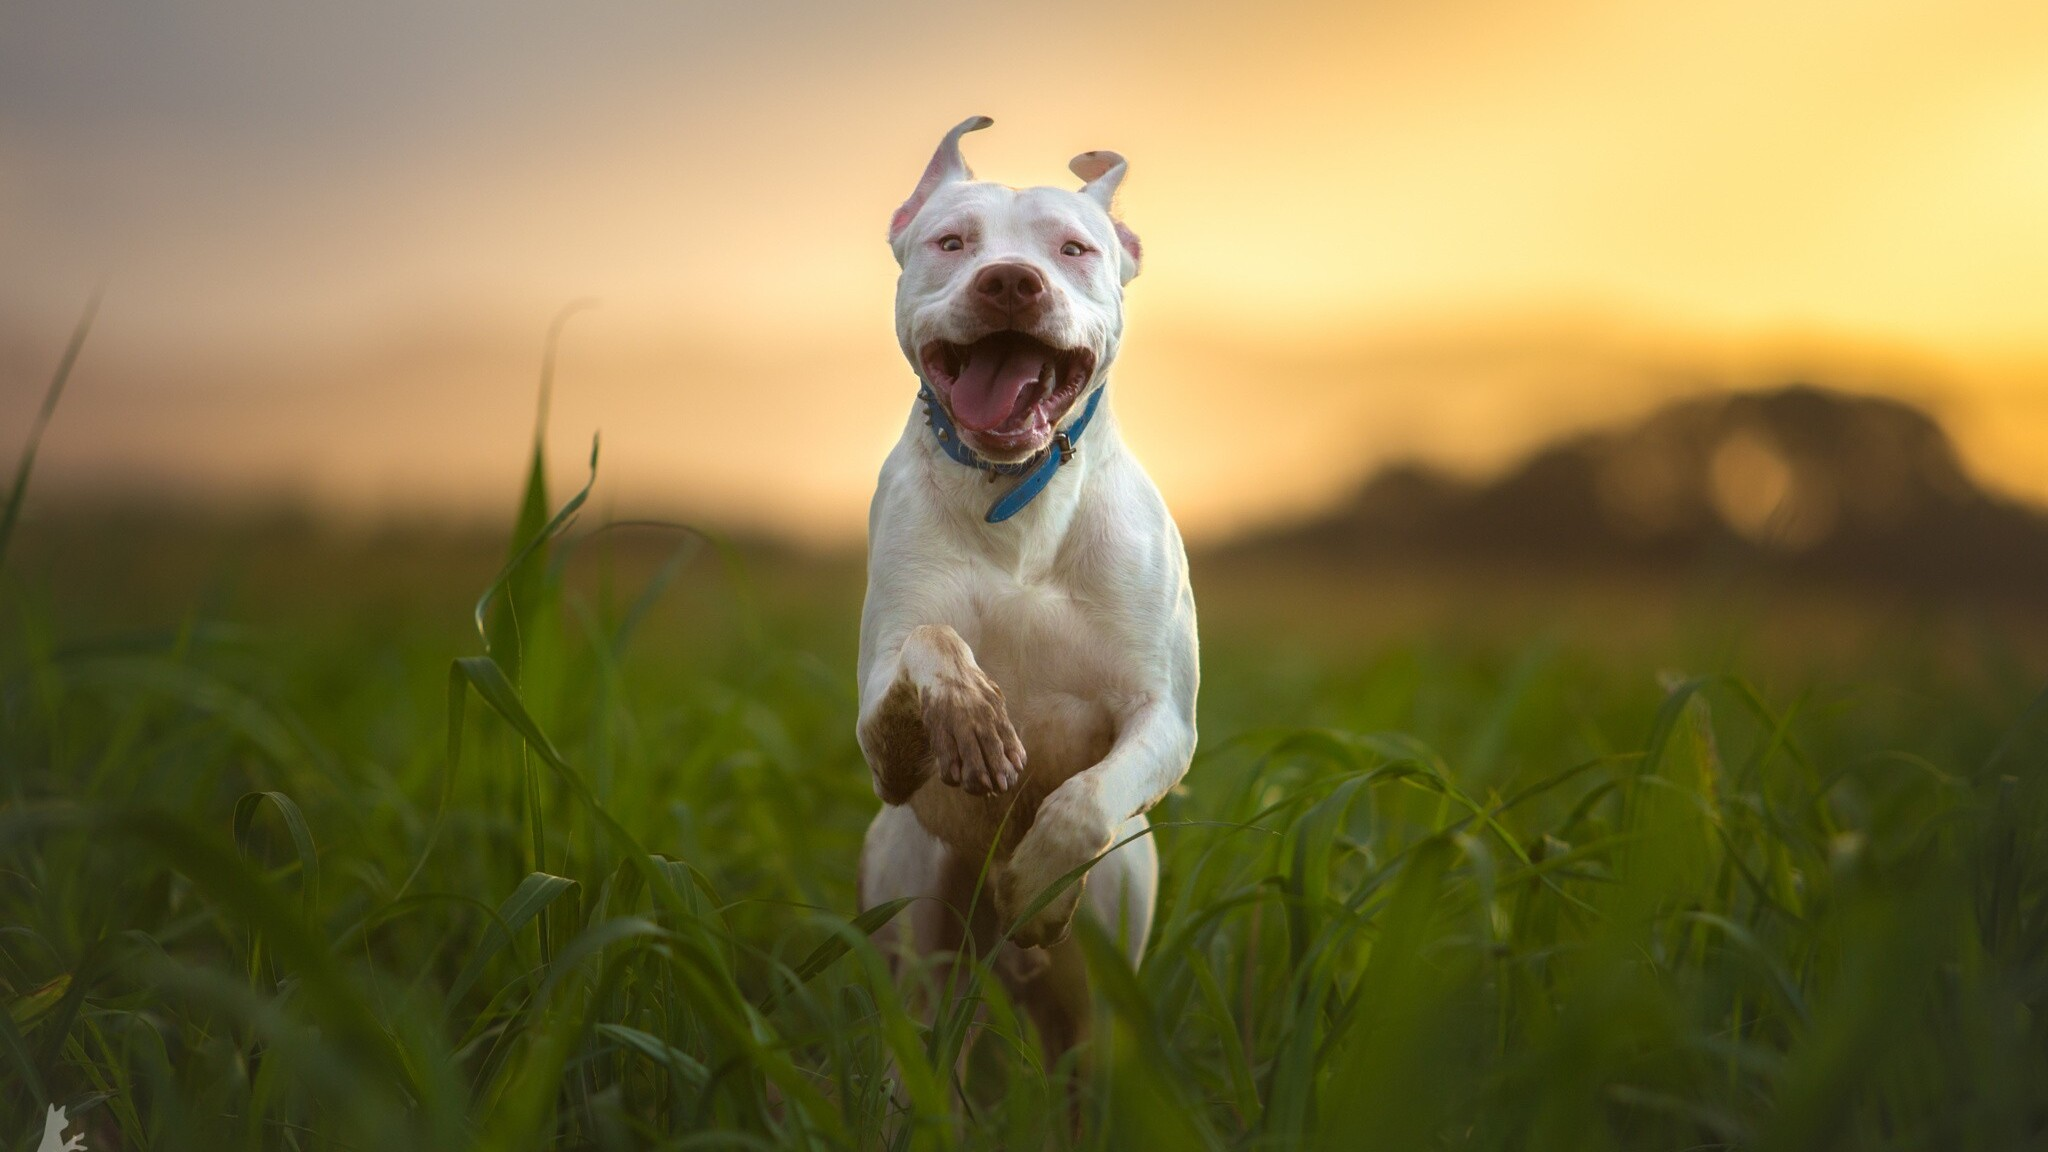 Download Pitbull Dog Breed Running HD 4k Wallpapers In ...